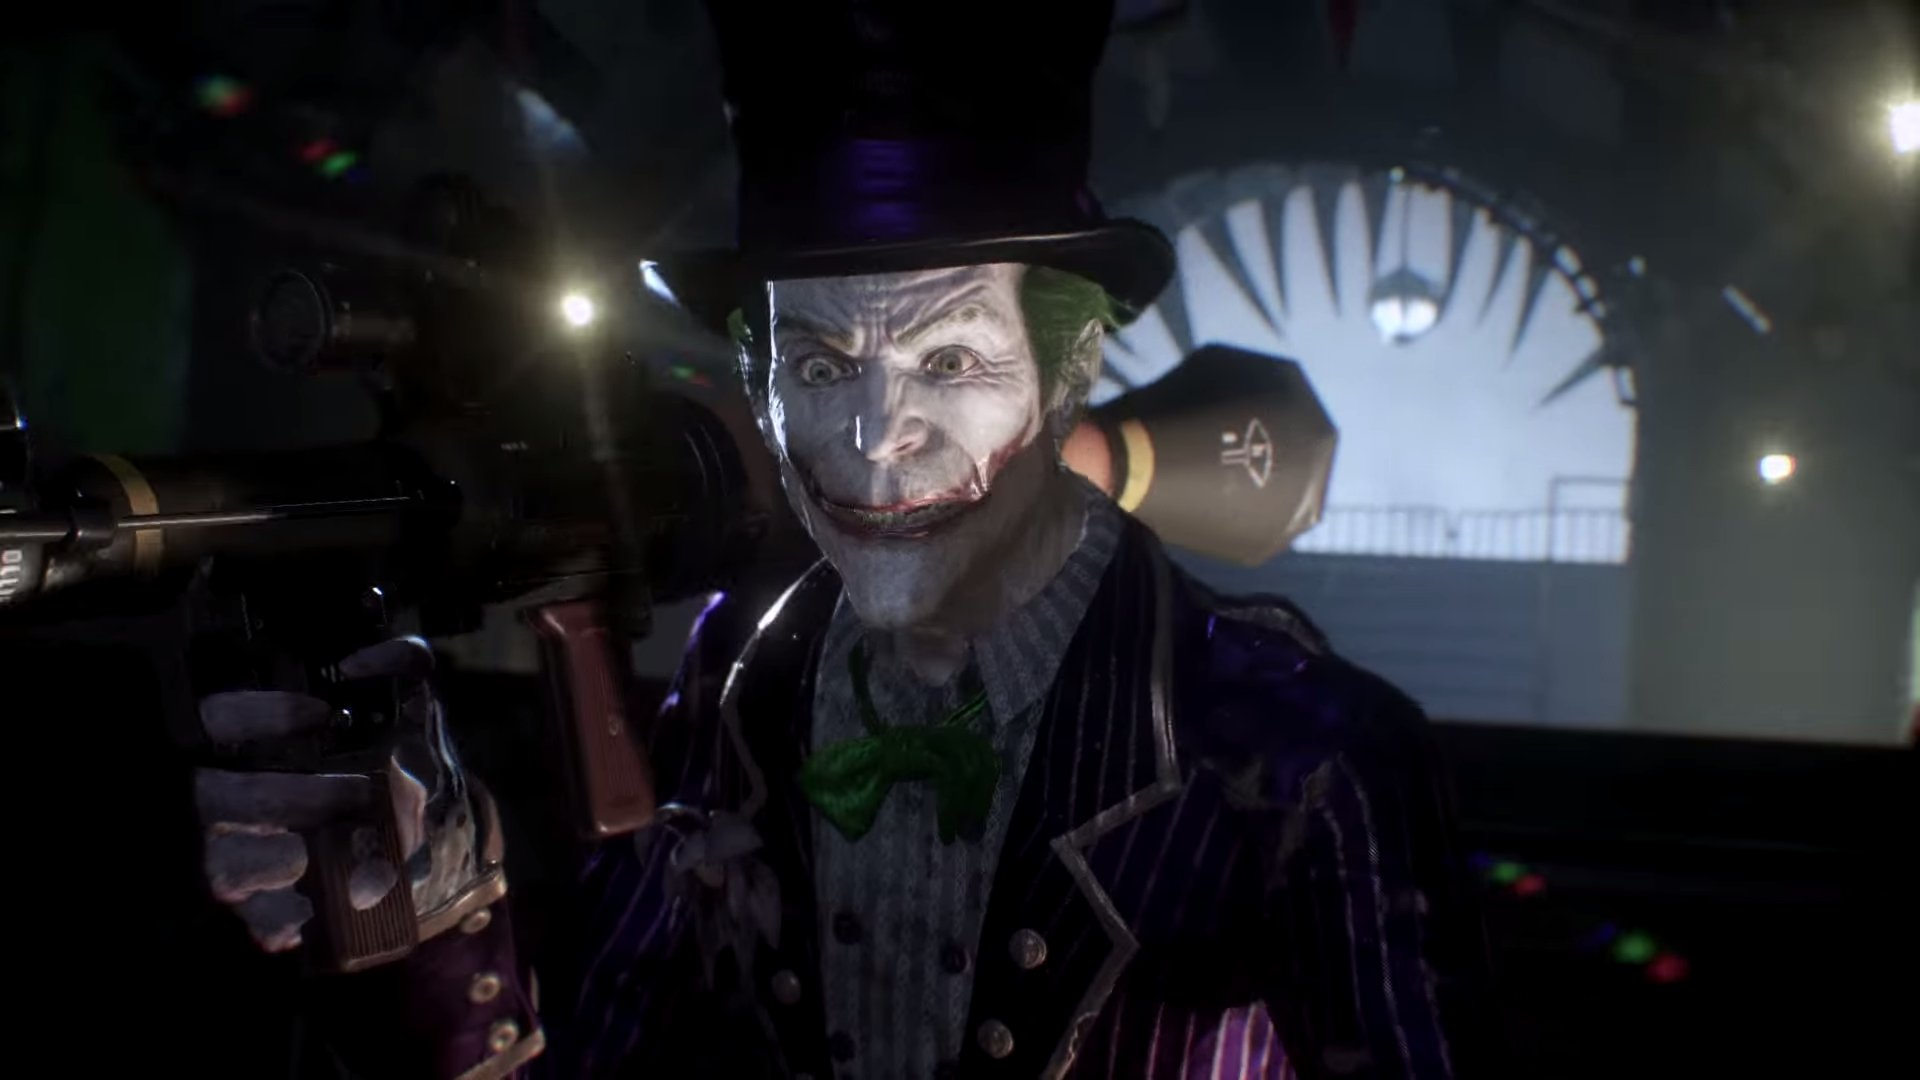 Mark Hamill returns as the Joker for this DLC adventure, bringing the same sardonic wit and unsettling humor to the forefront with his echoing cackle.